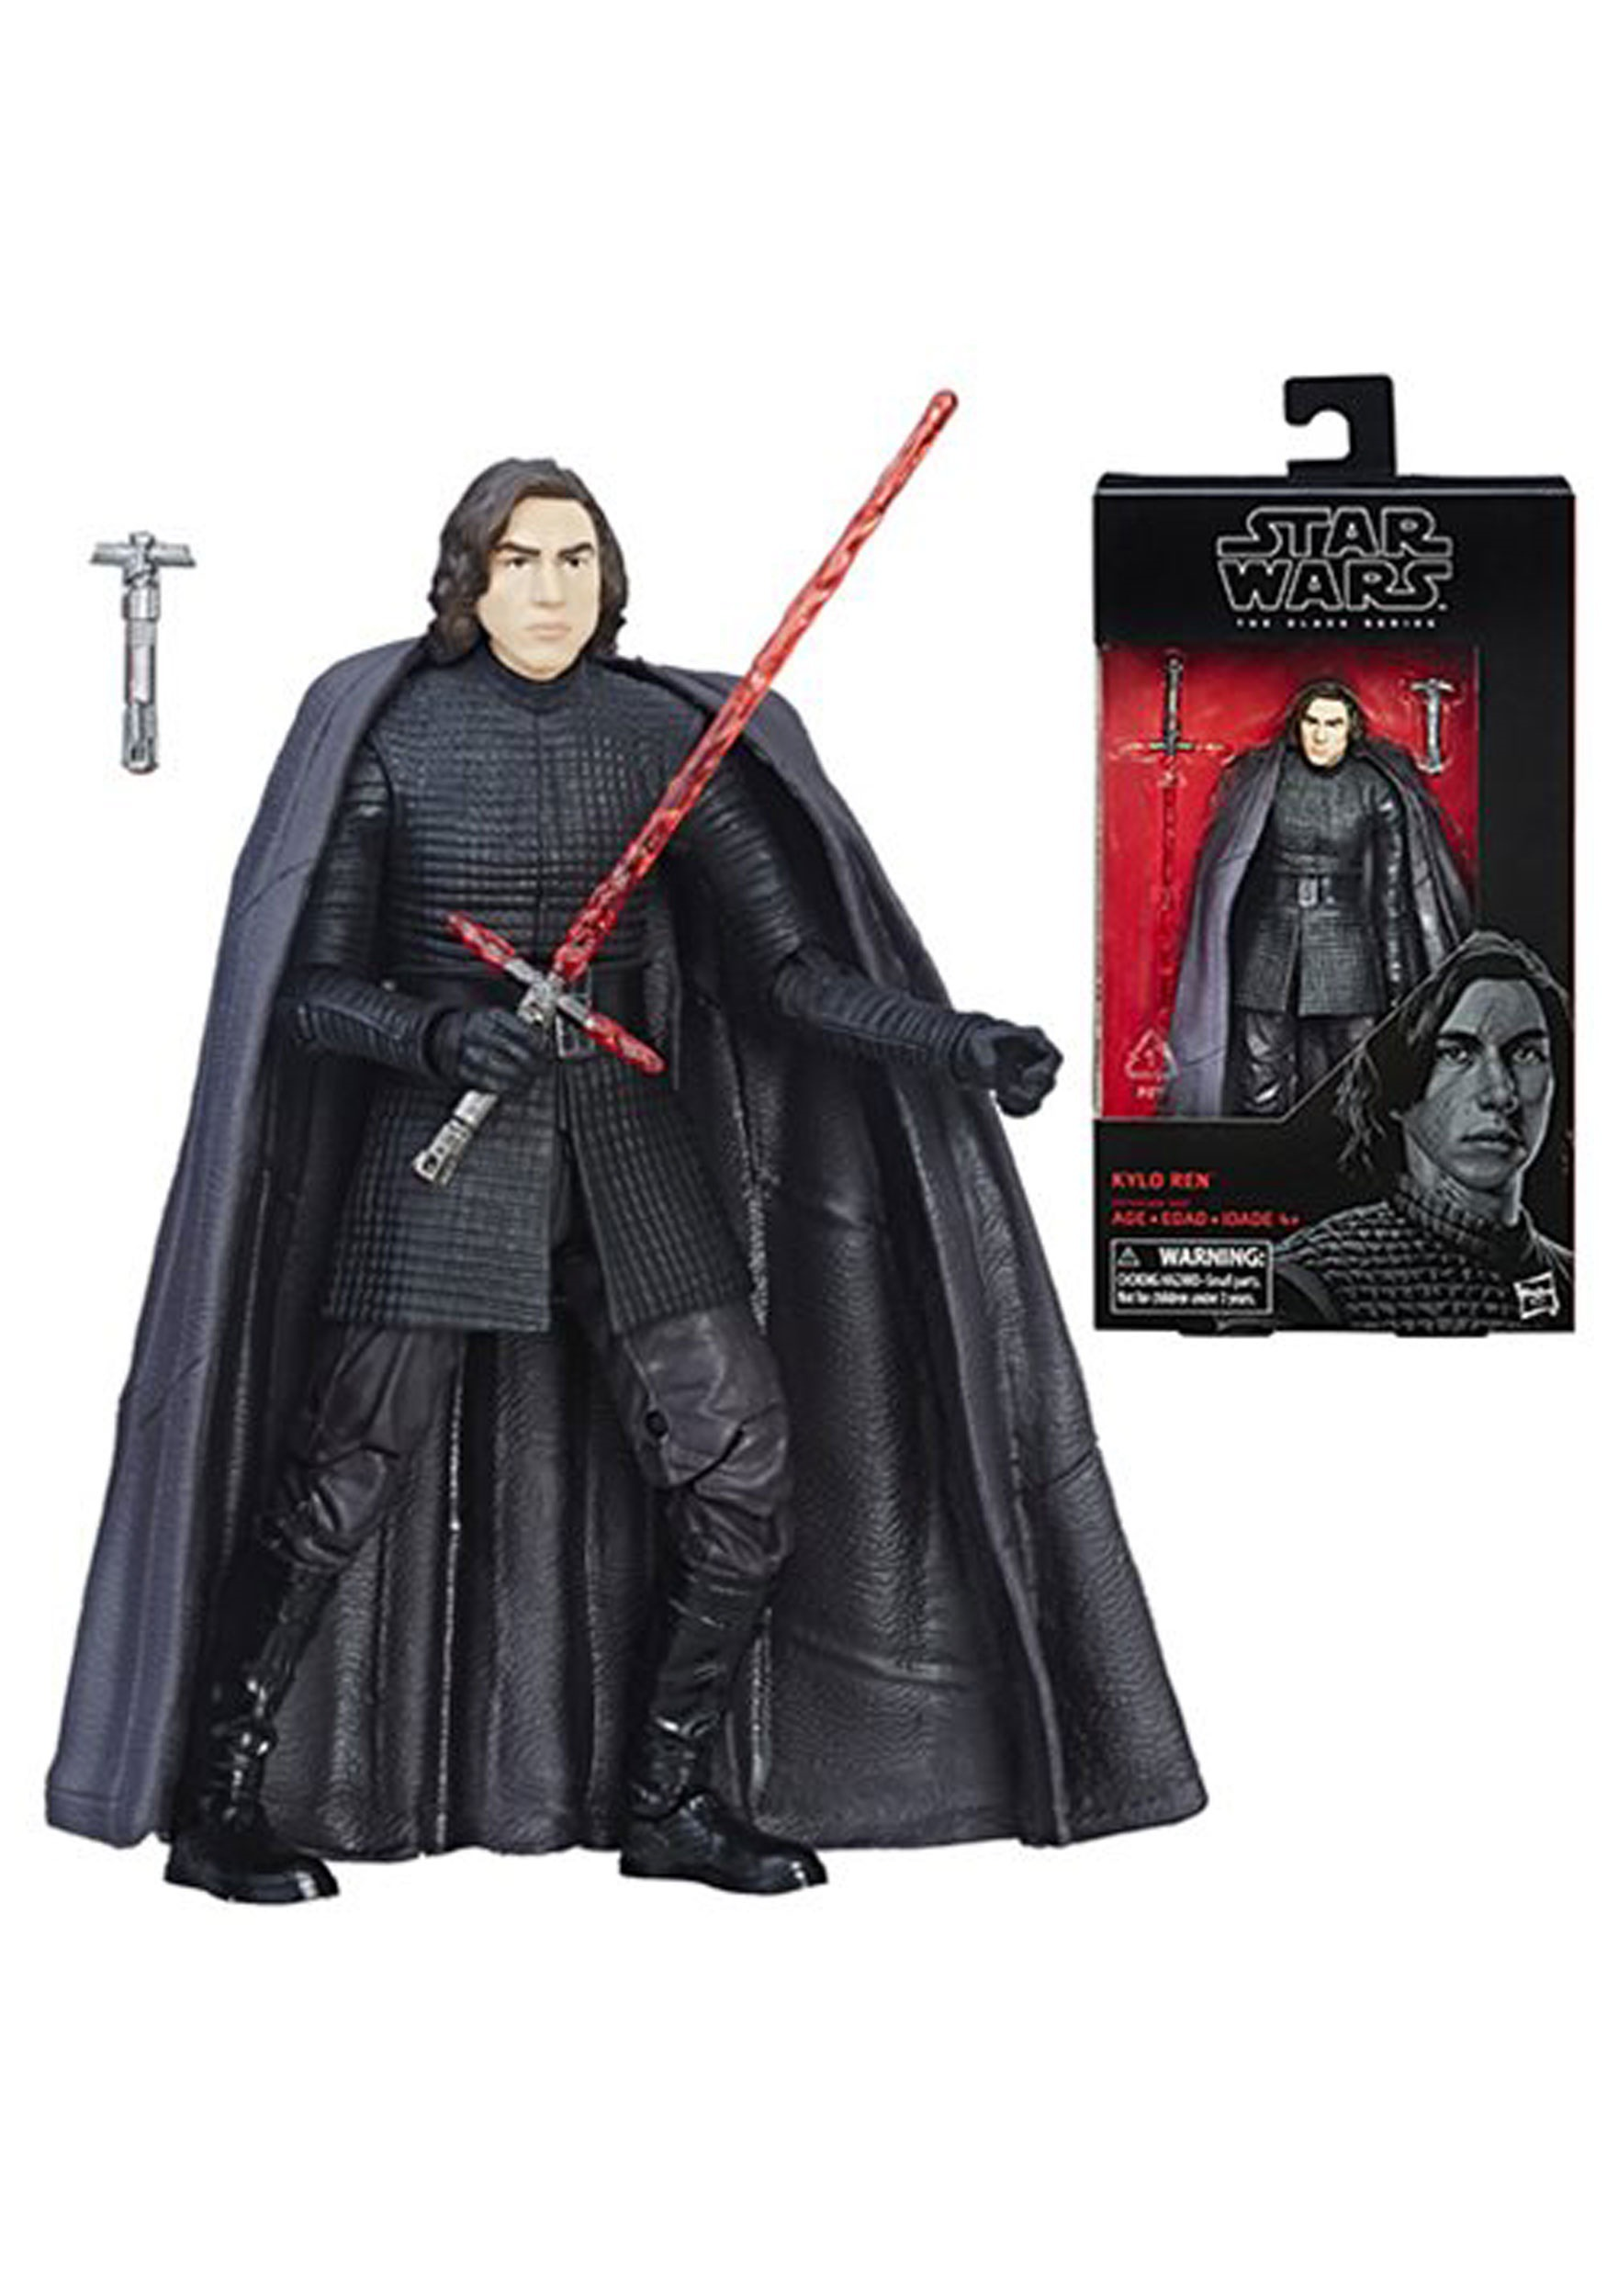 Star Wars The Black Series Kylo Ren The Last Jedi Action Figure EEDHSC1773